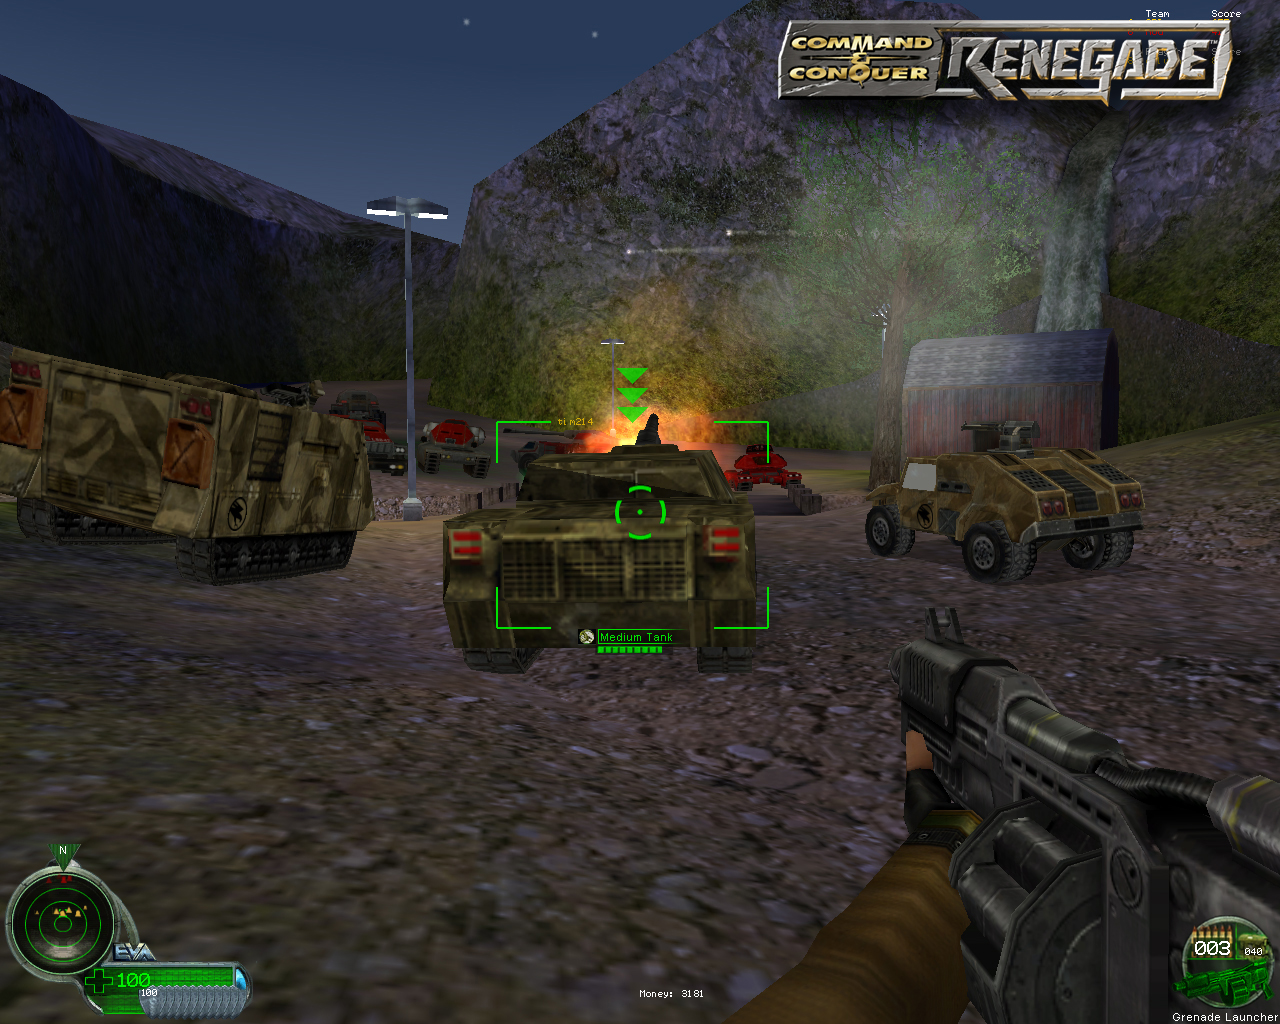 Command and Conquer: The Ultimate Edition Activation Key + Crack PC Game Download